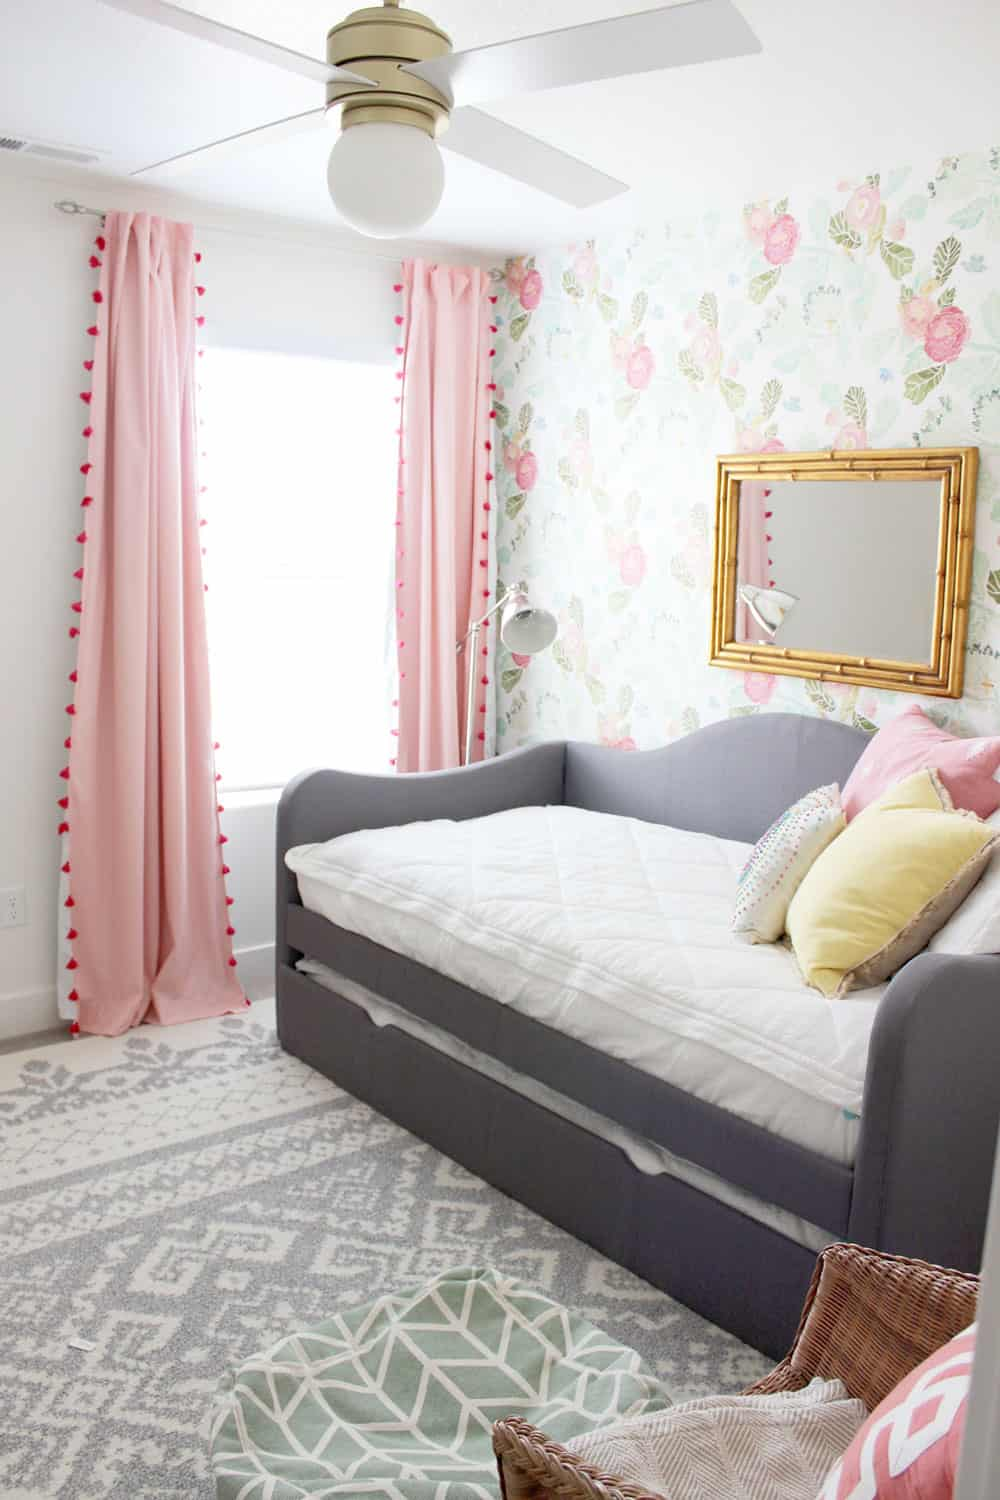 grey trundle bed on moroccan rug with pink pillow fort blackout curtains